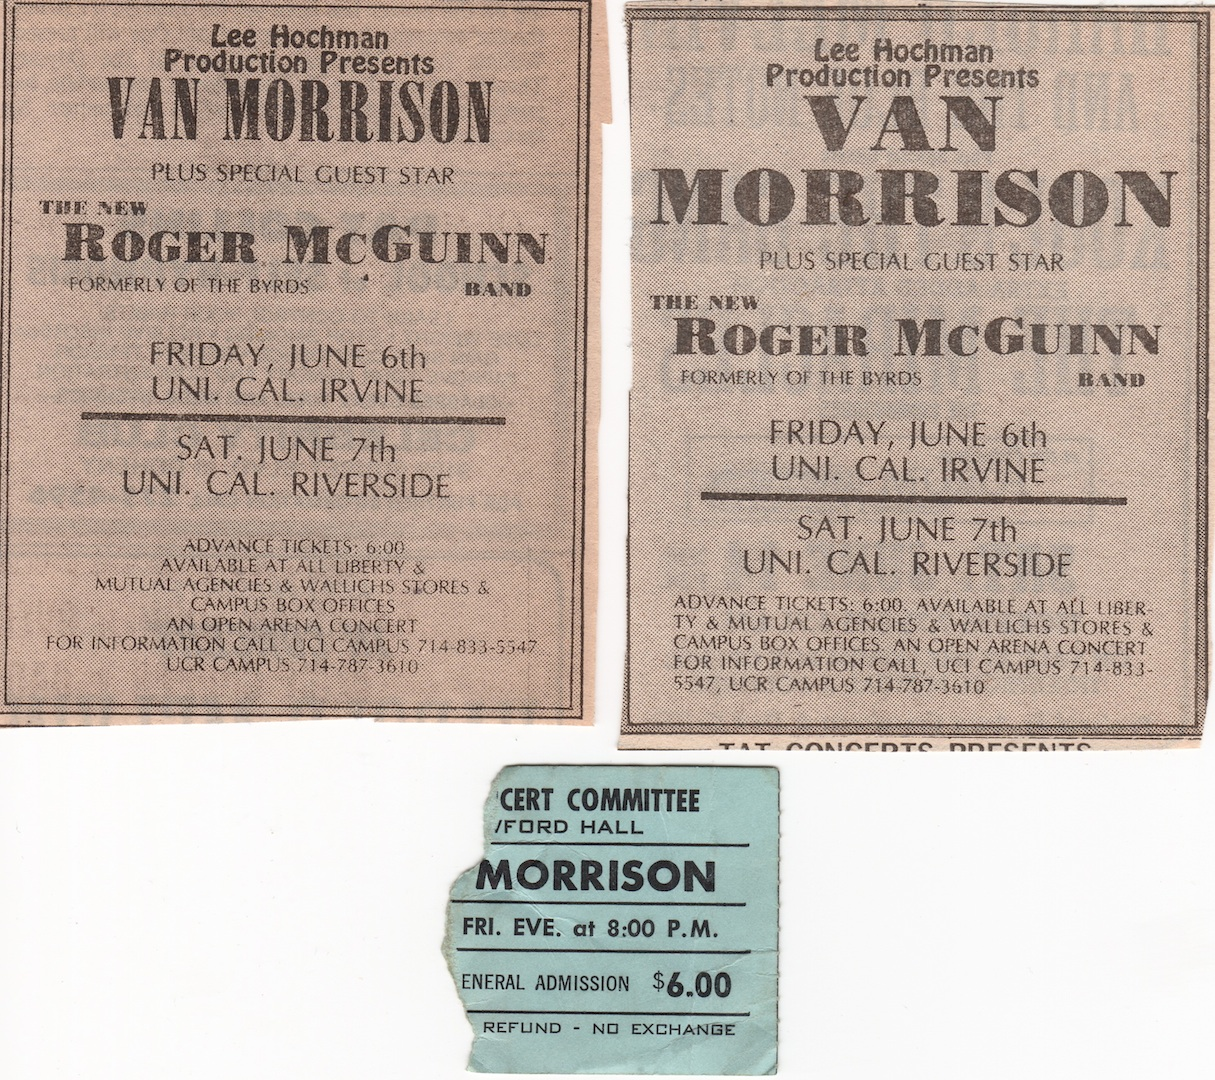 VanMorrison1975-06-06UniversityOfCaliforniaIrvineCA.jpg